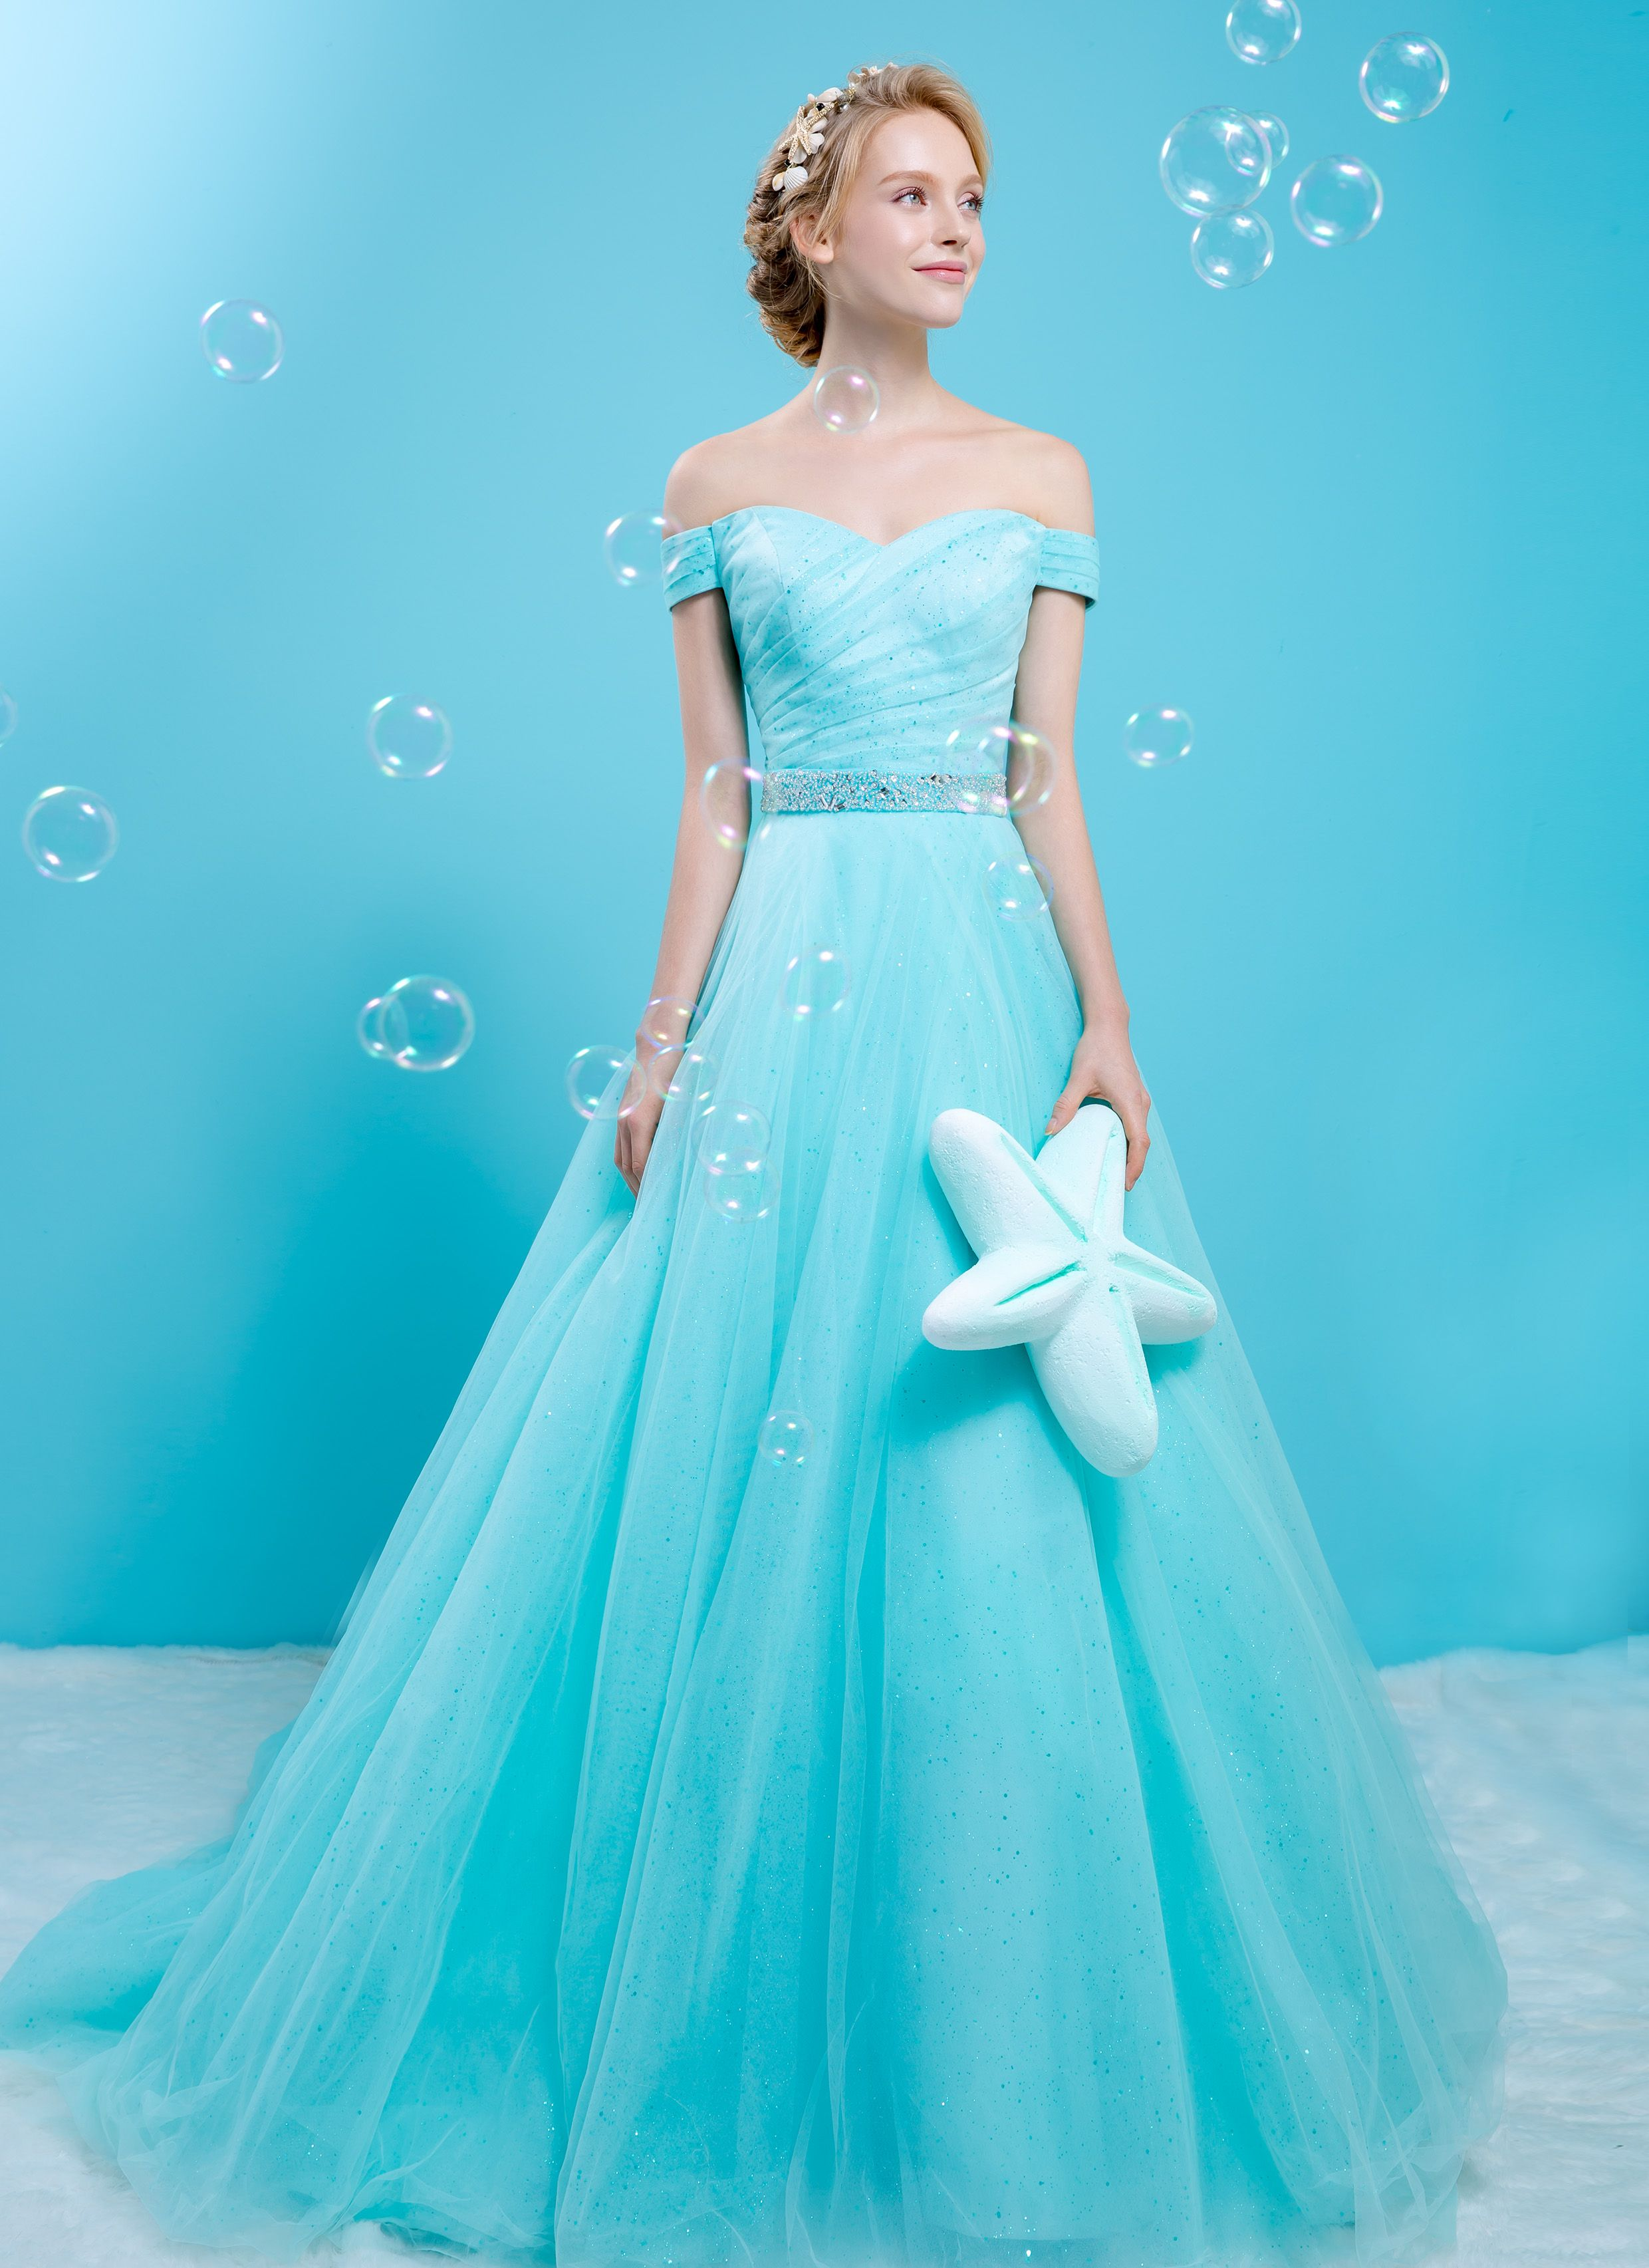 evening gown | Happily Ever After | Pinterest